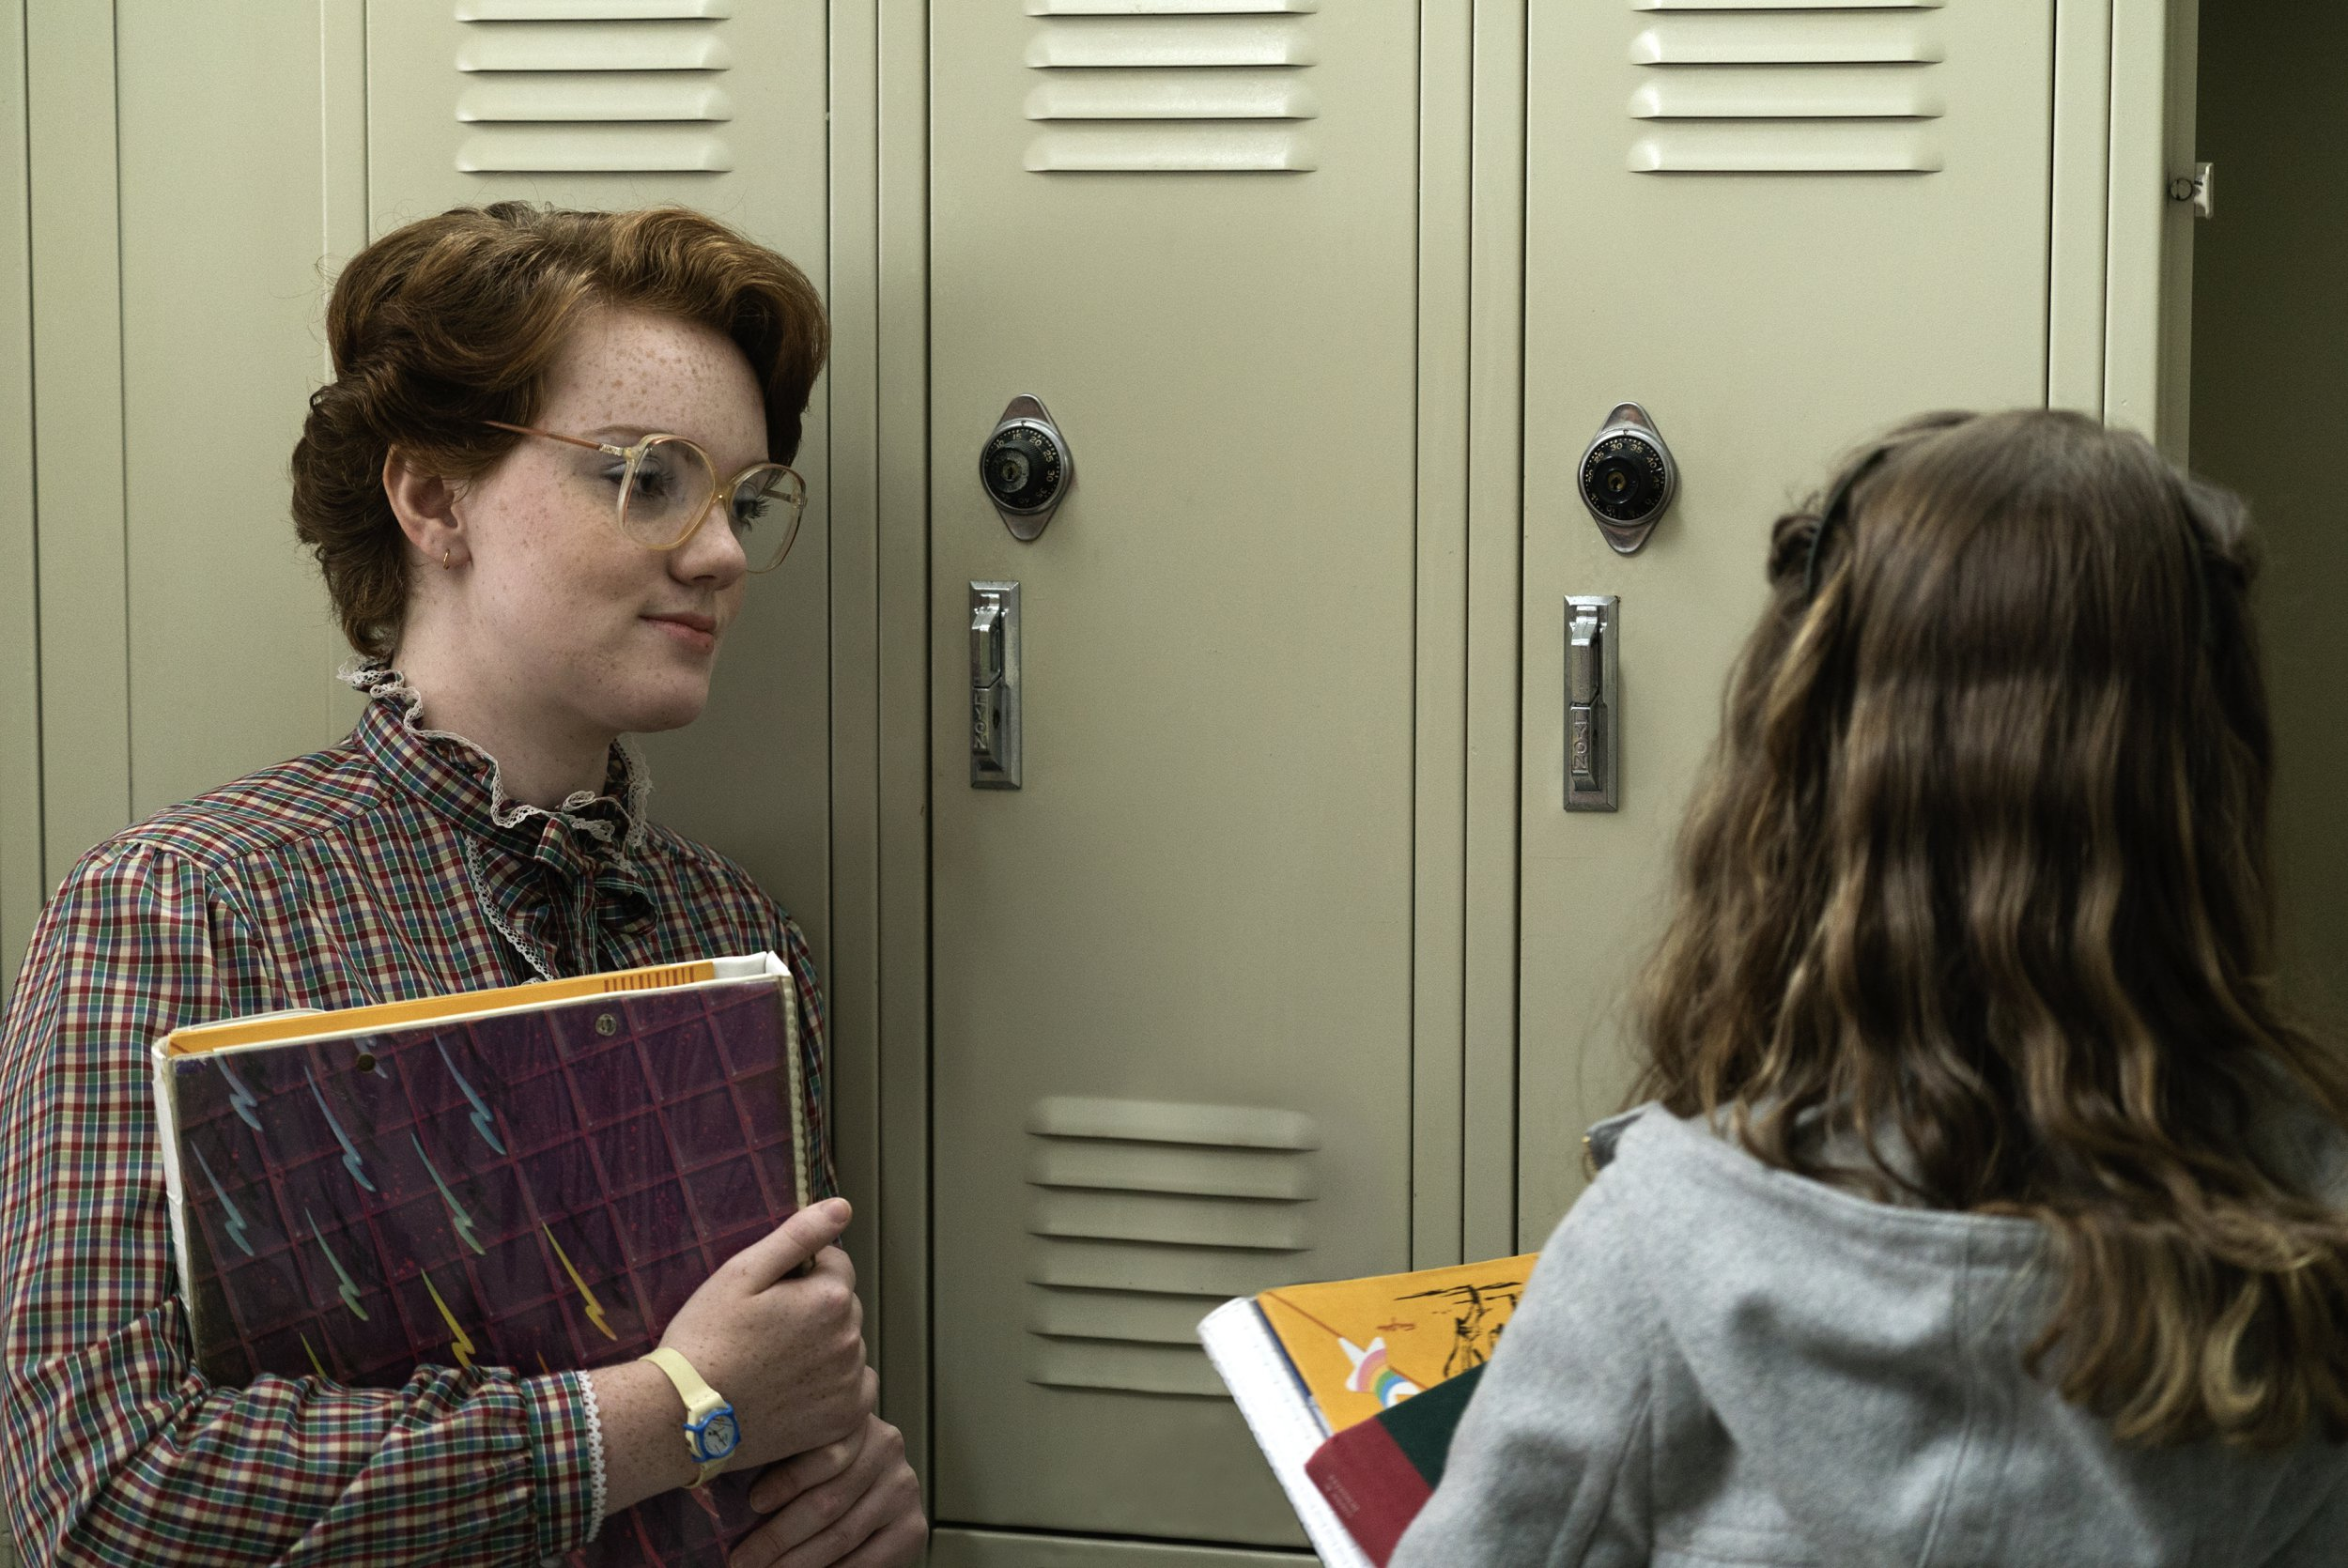 Stranger Things season 2 will feature a major storyline for Barb's parents